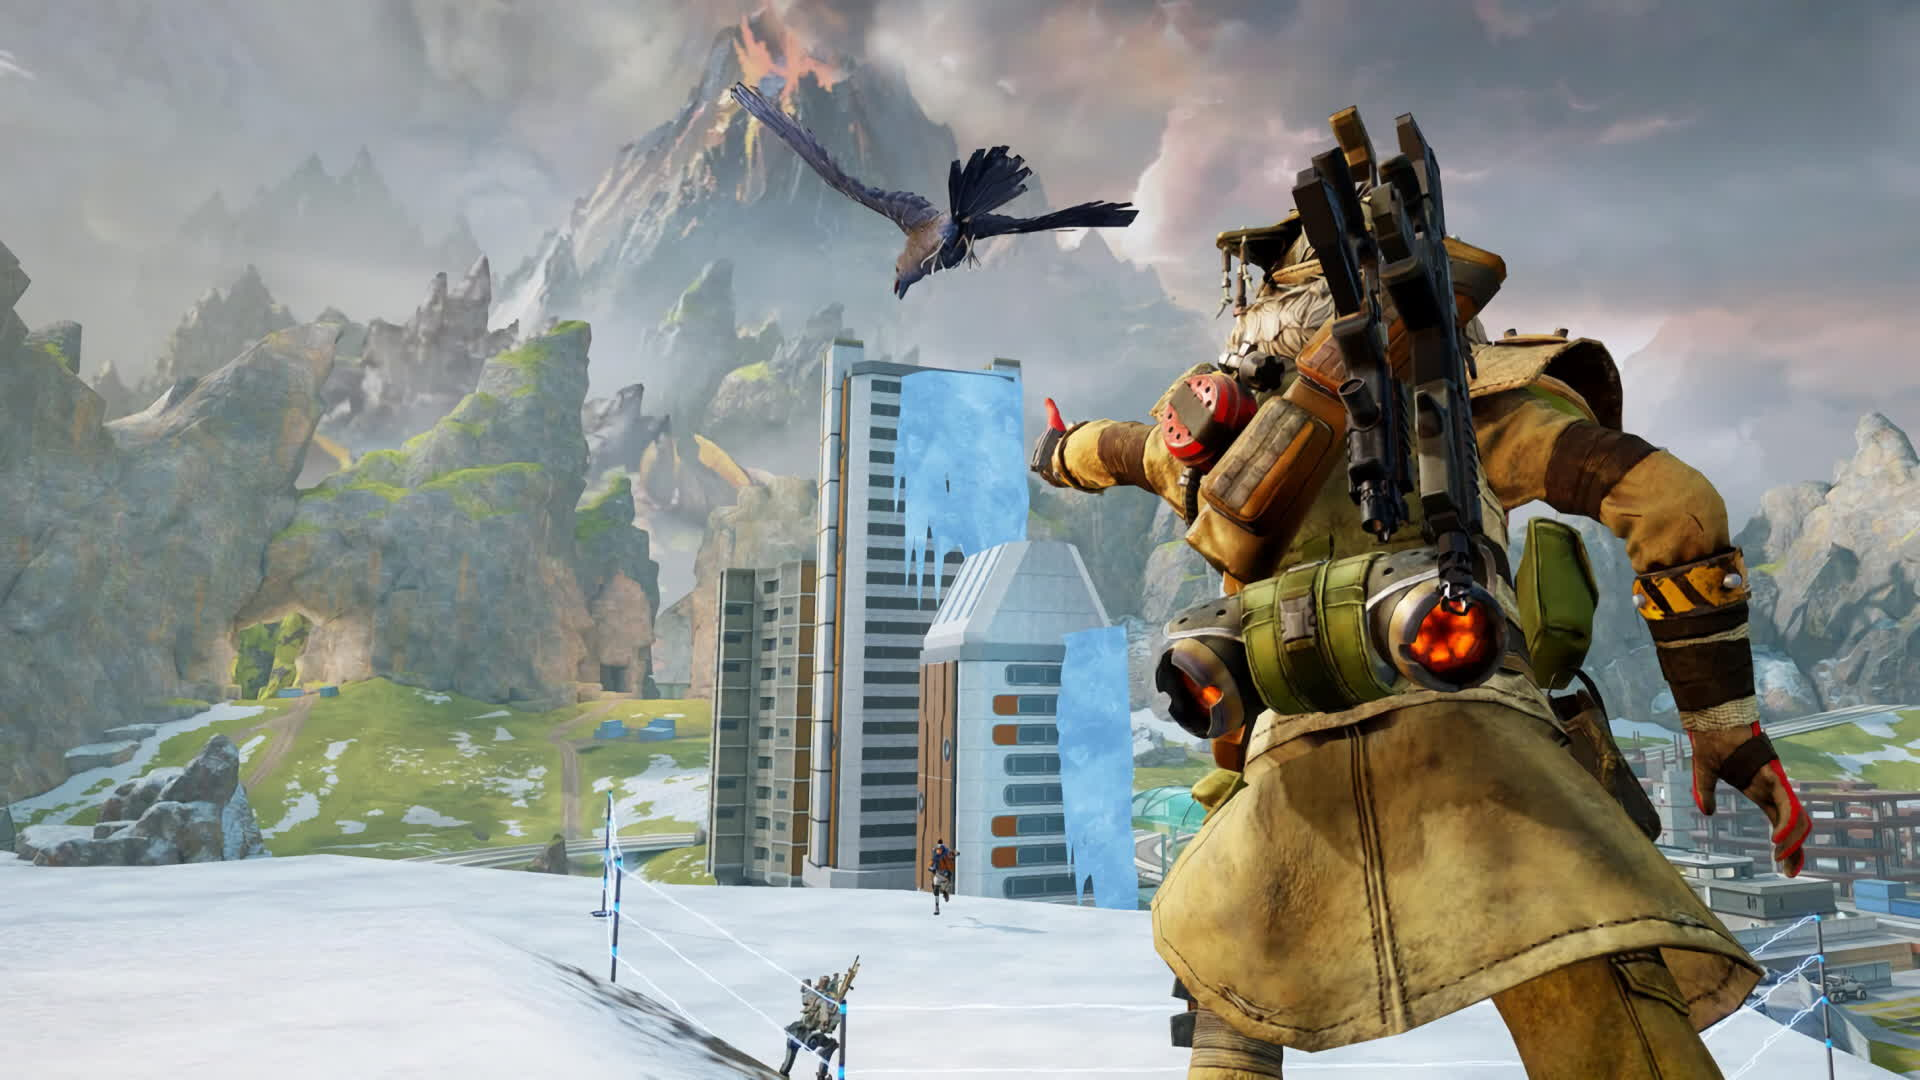 Apex Legends is coming to mobile devices, beta testing begins this month